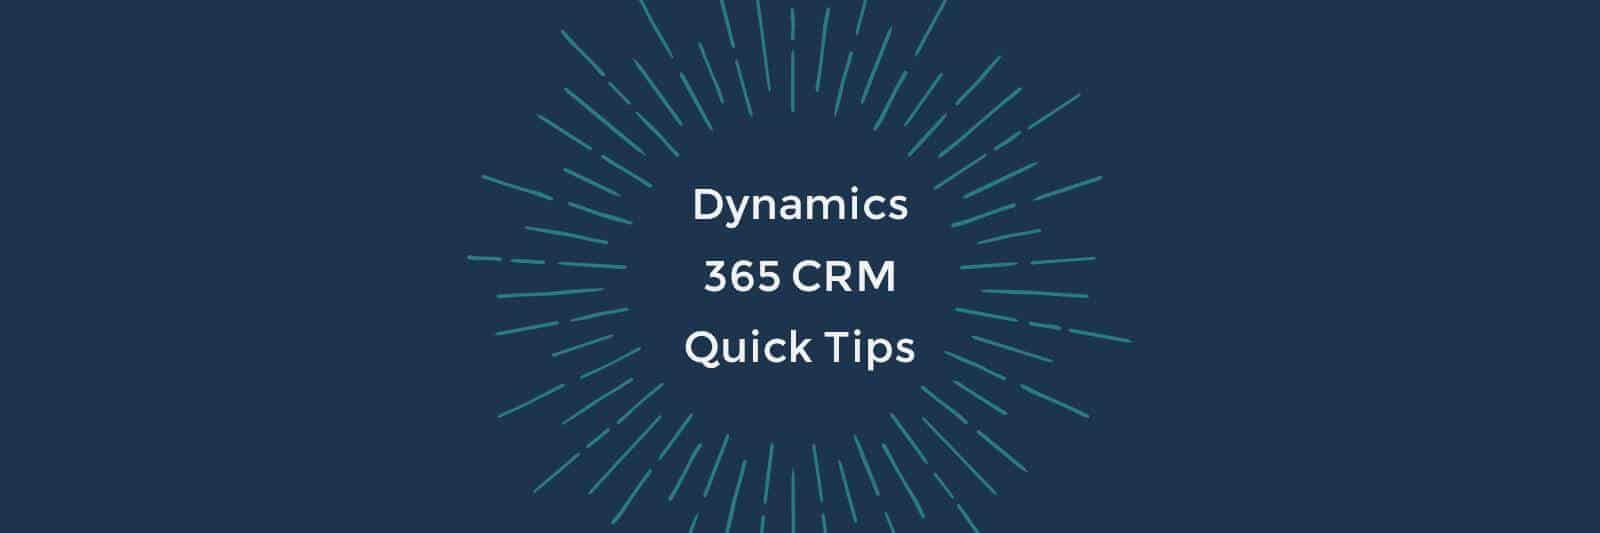 Dynamics 365 QuickTips – How do I set up Goals?